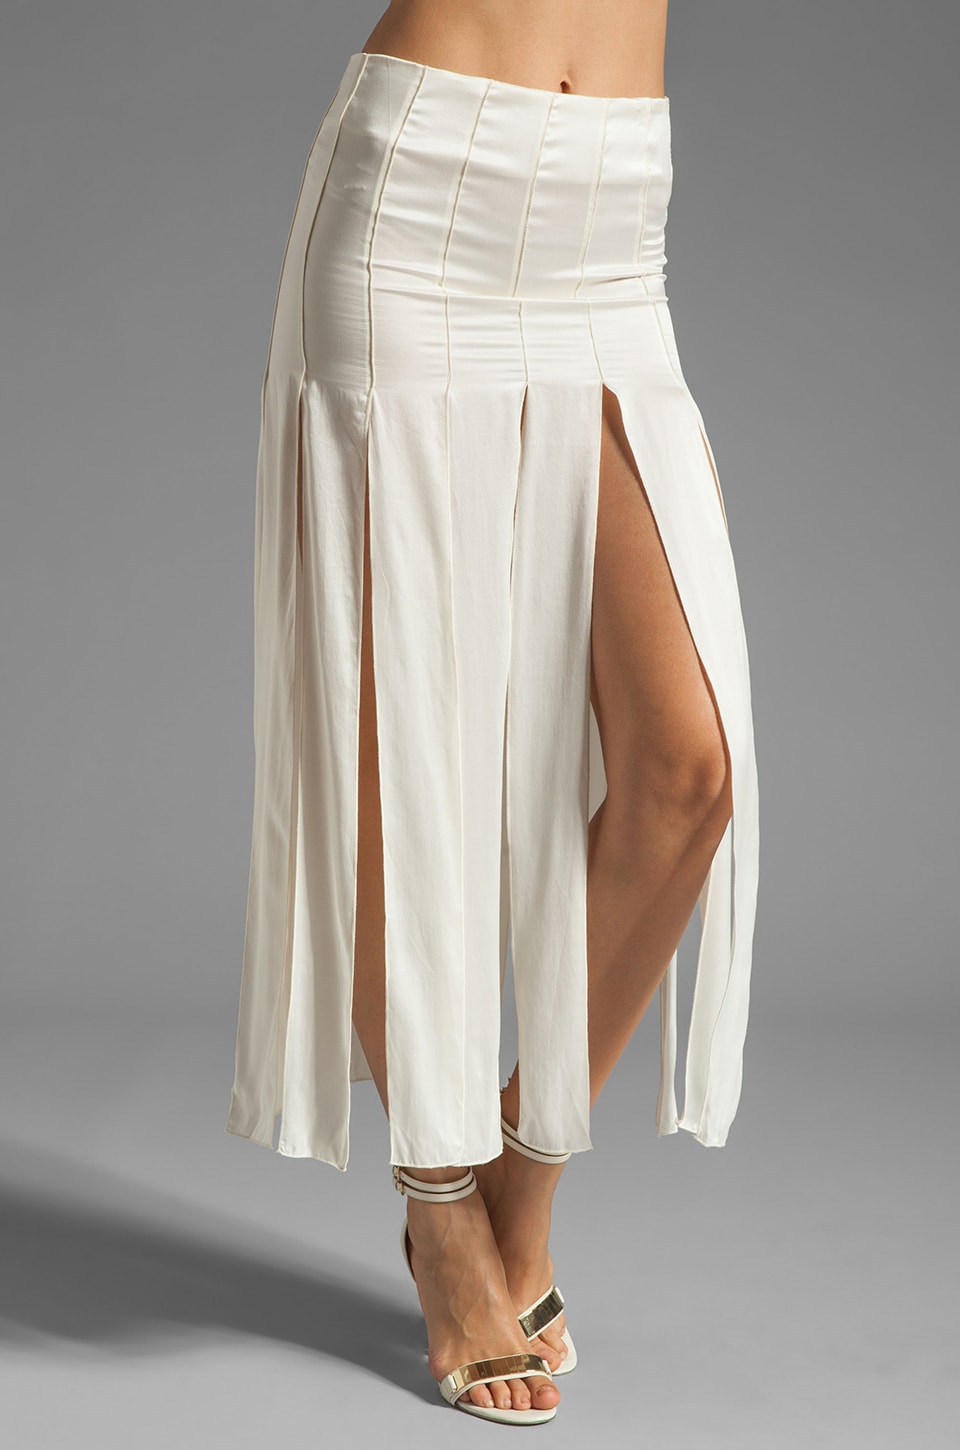 Friend of Mine Doomsday Paneled Skirt in Ivory